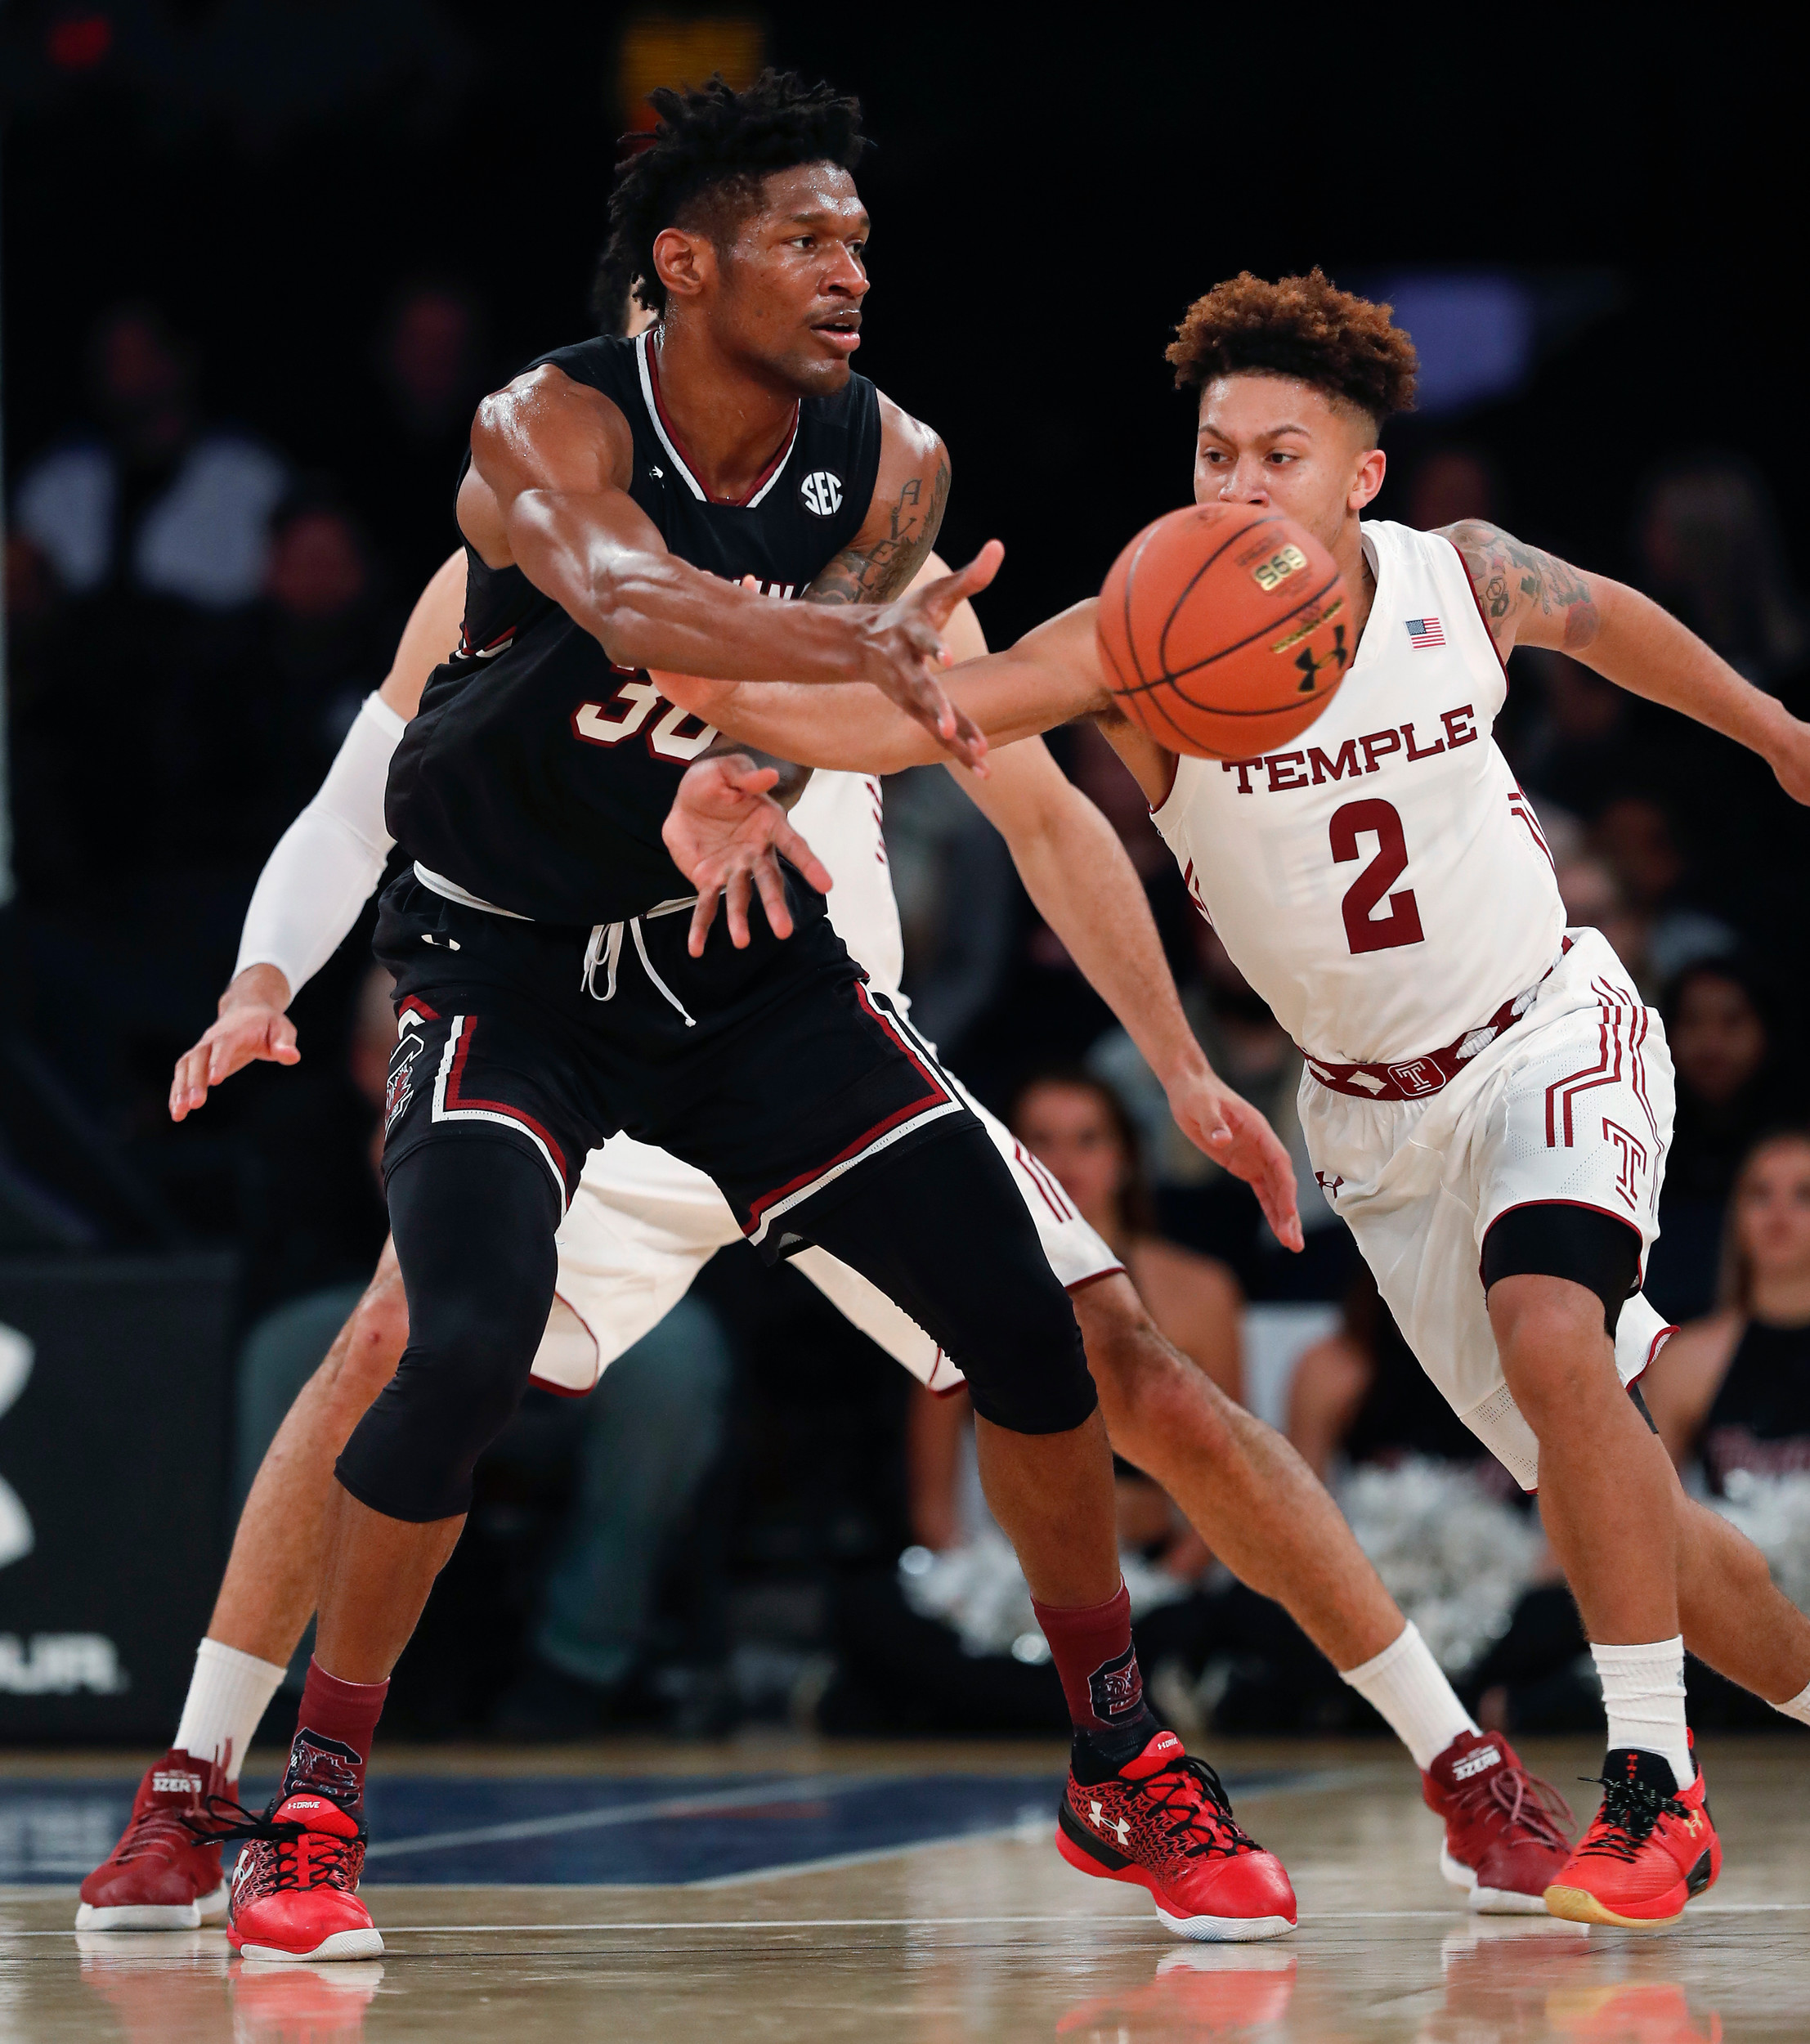 South Carolina forward Chris Silva (30) leads the Gamecocks in both scoring and rebounding. USC plays at Clemson today beginning at 7 p.m. in a game that will be televised on ESPN2.